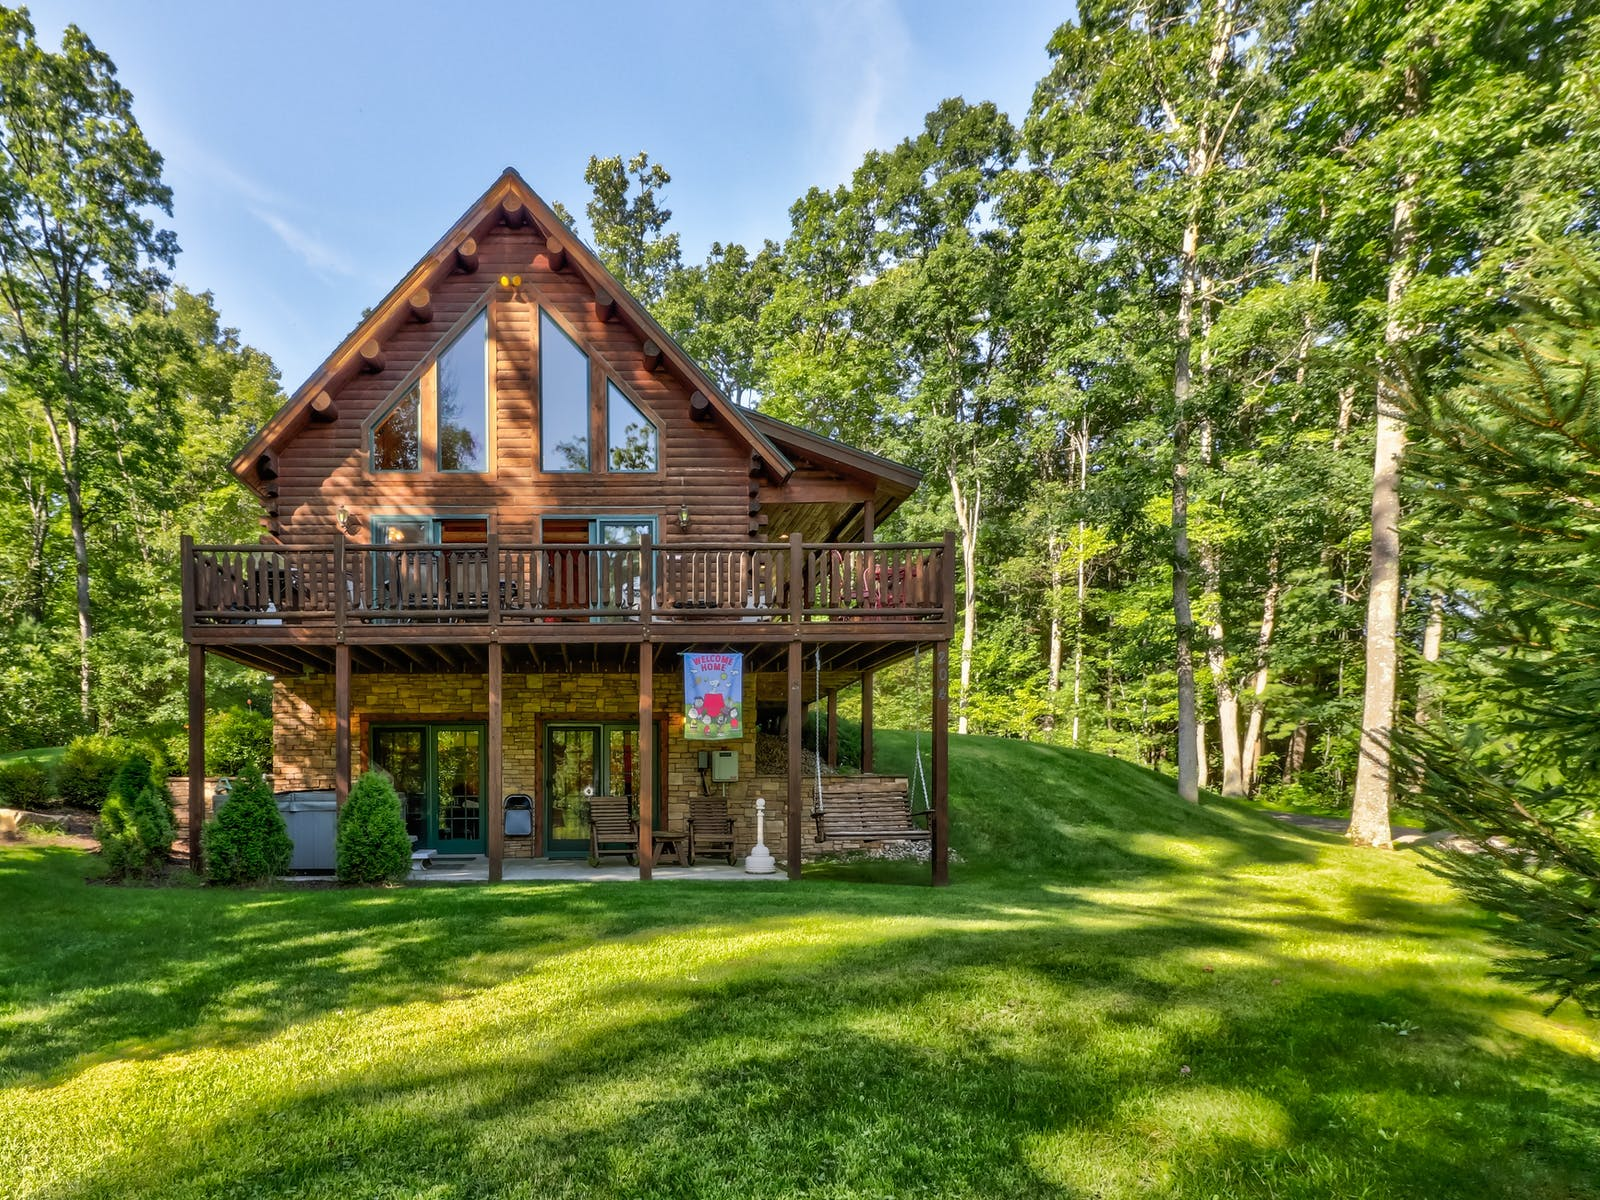 Vacation cabin located in McHenry, MD